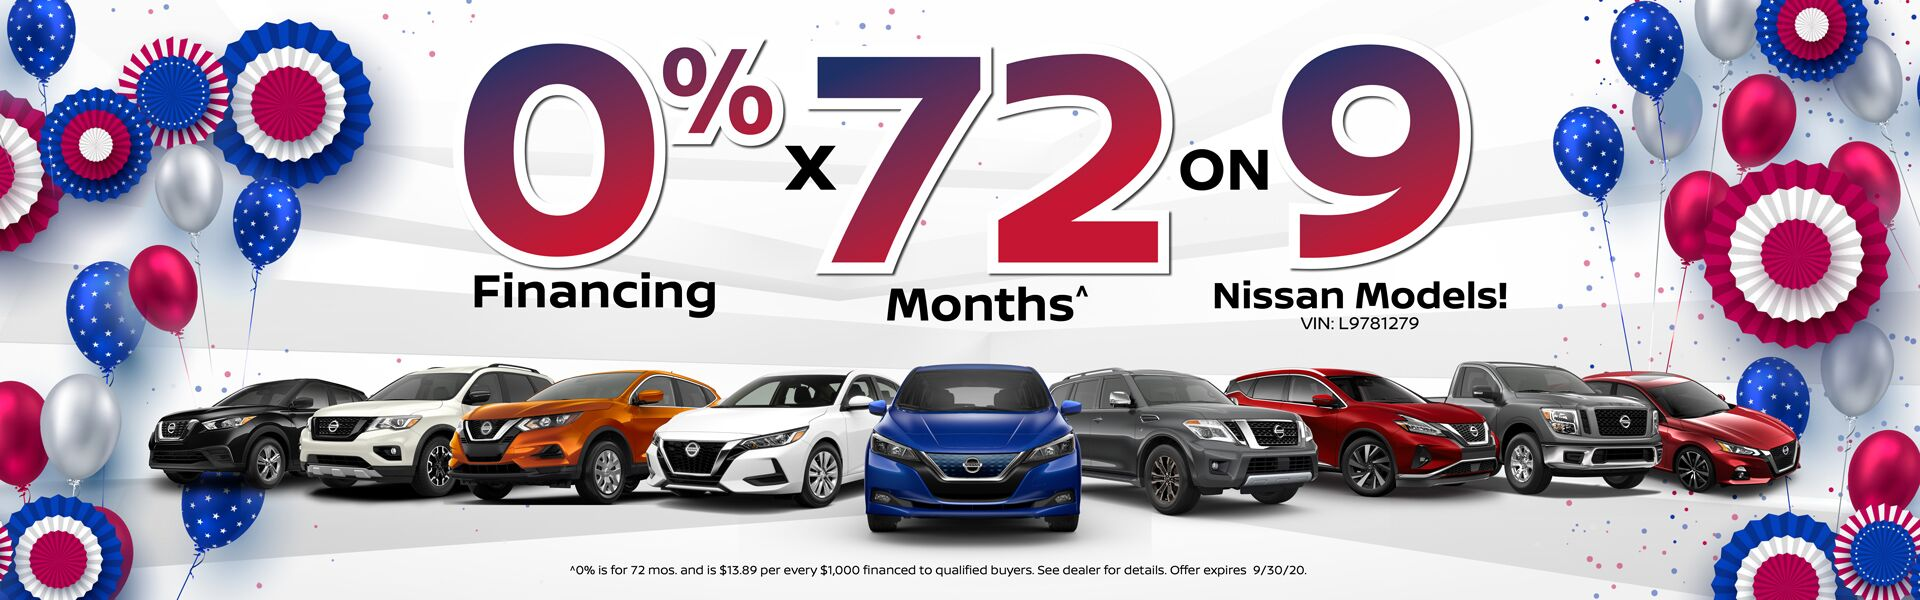 0% x 72 on 9 Nissan Models